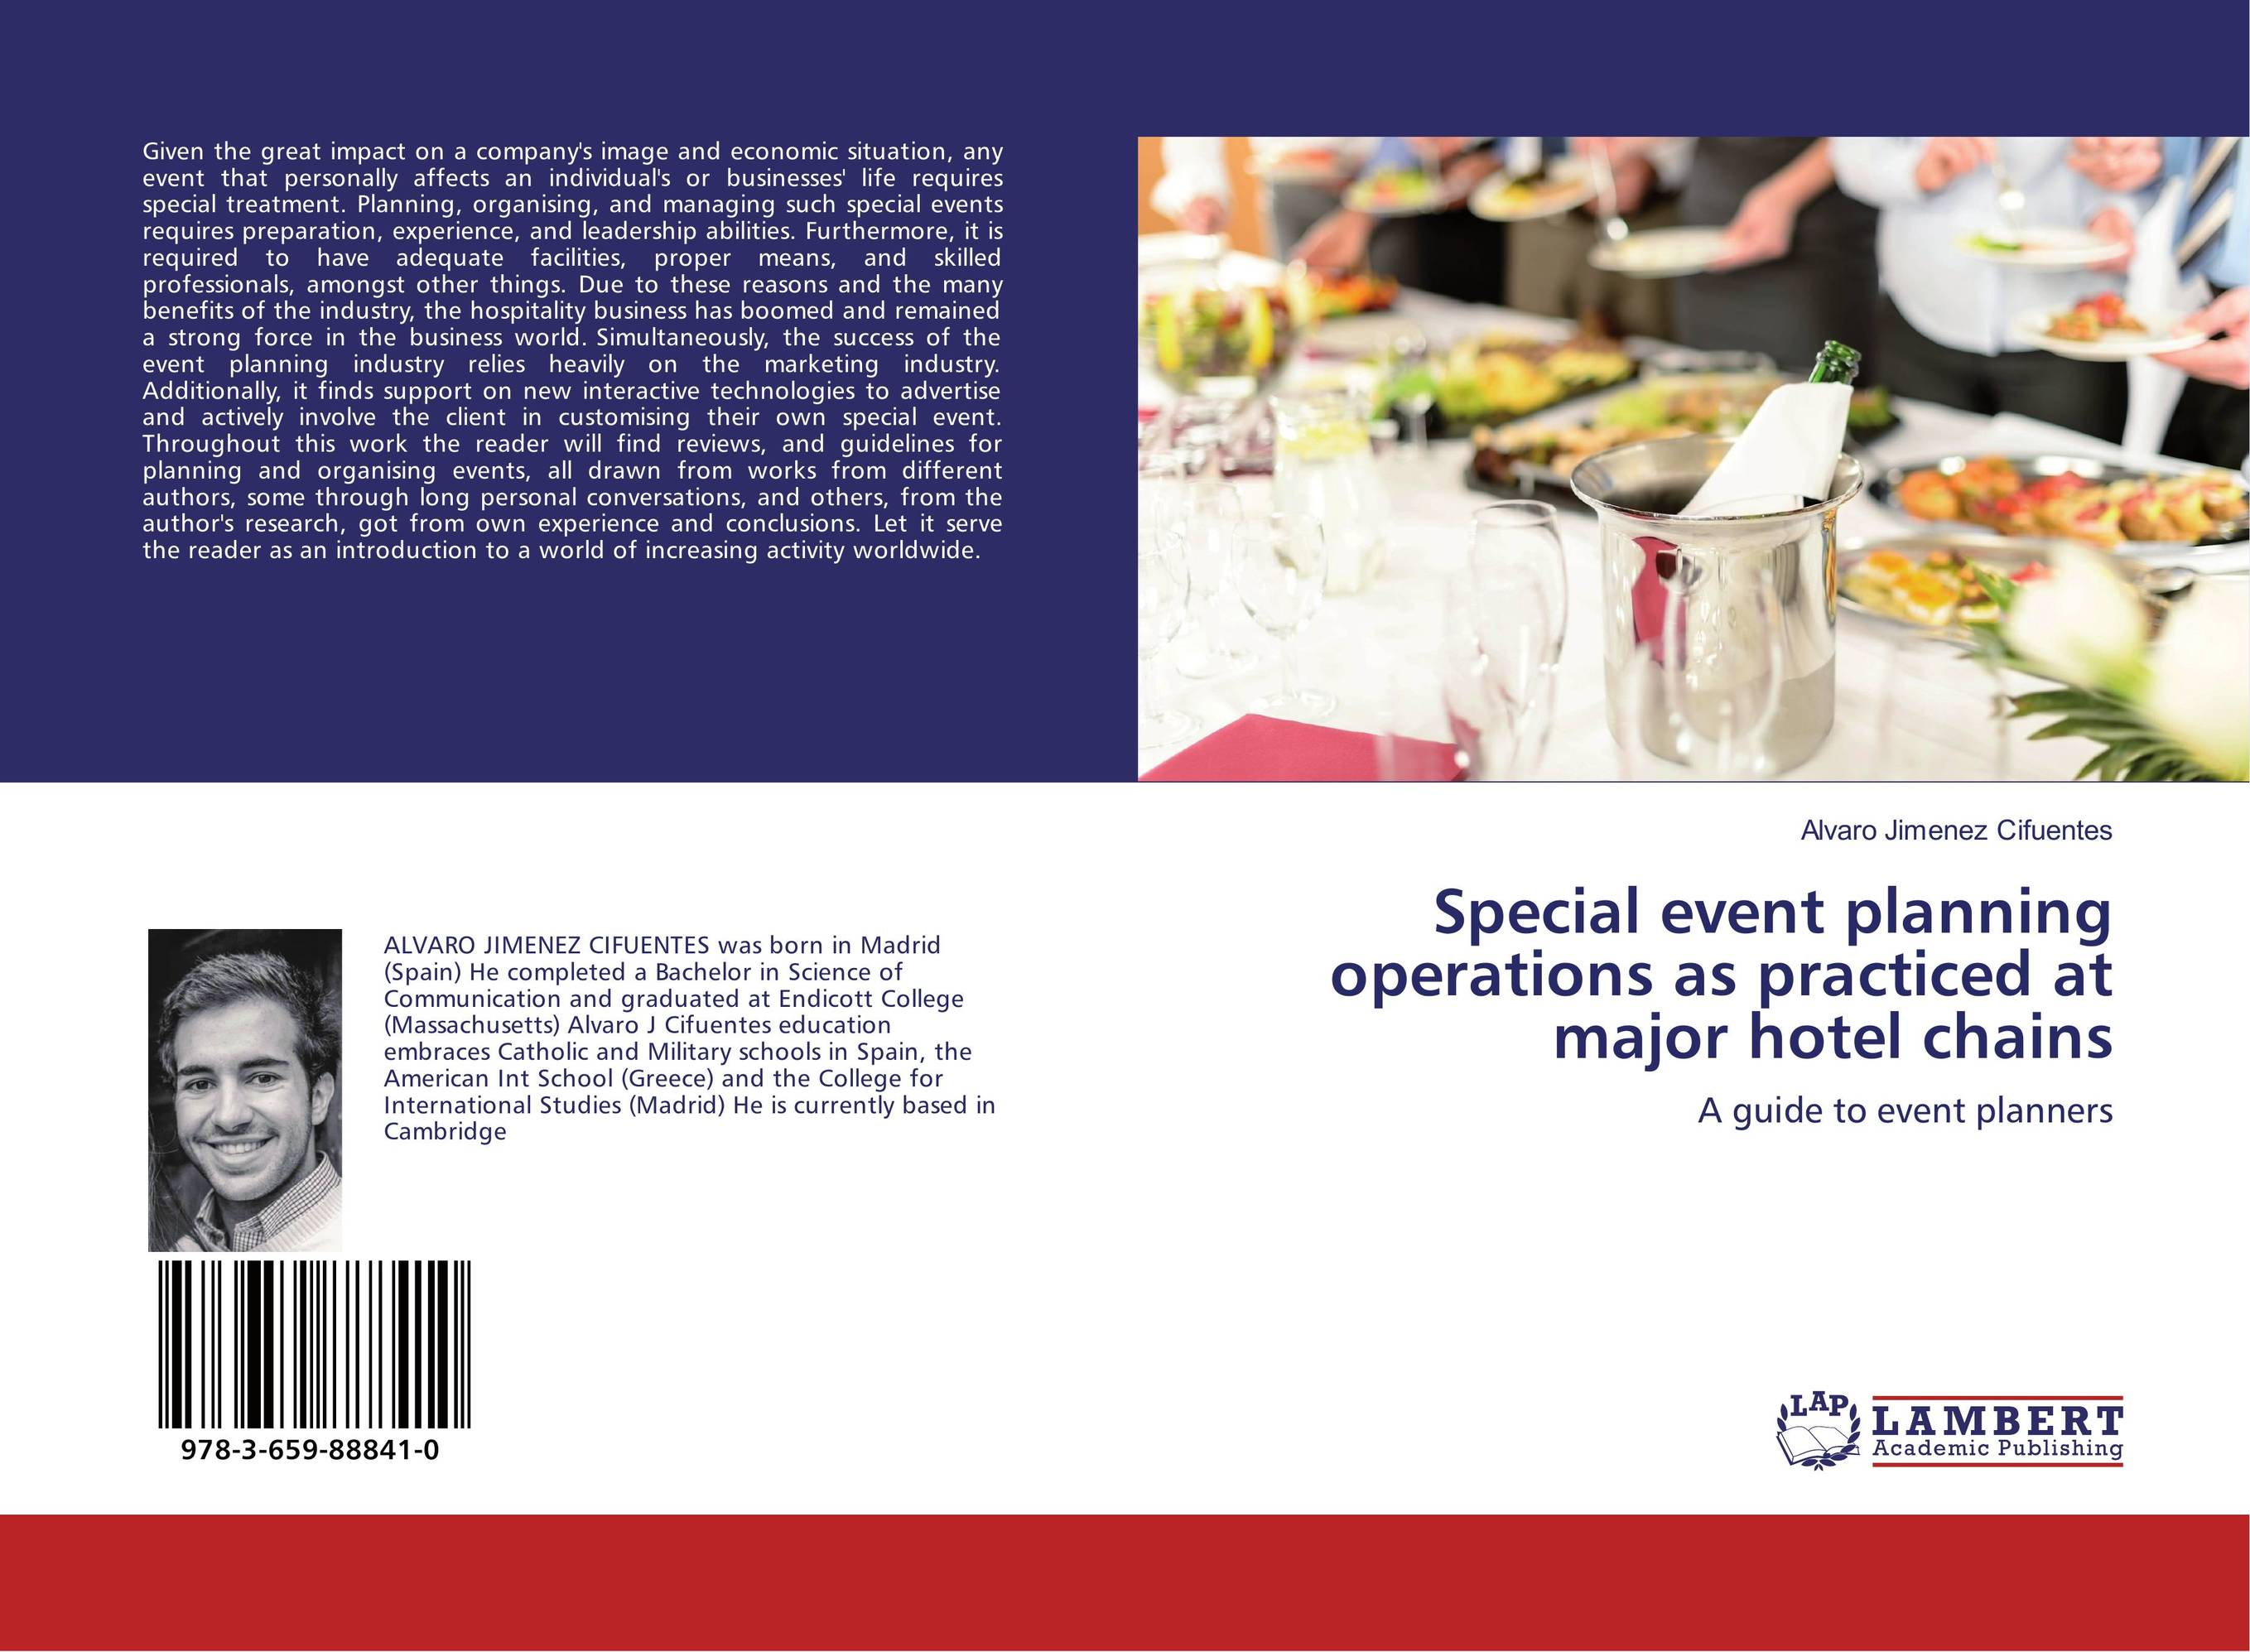 Special event planning operations as practiced at major hotel chains